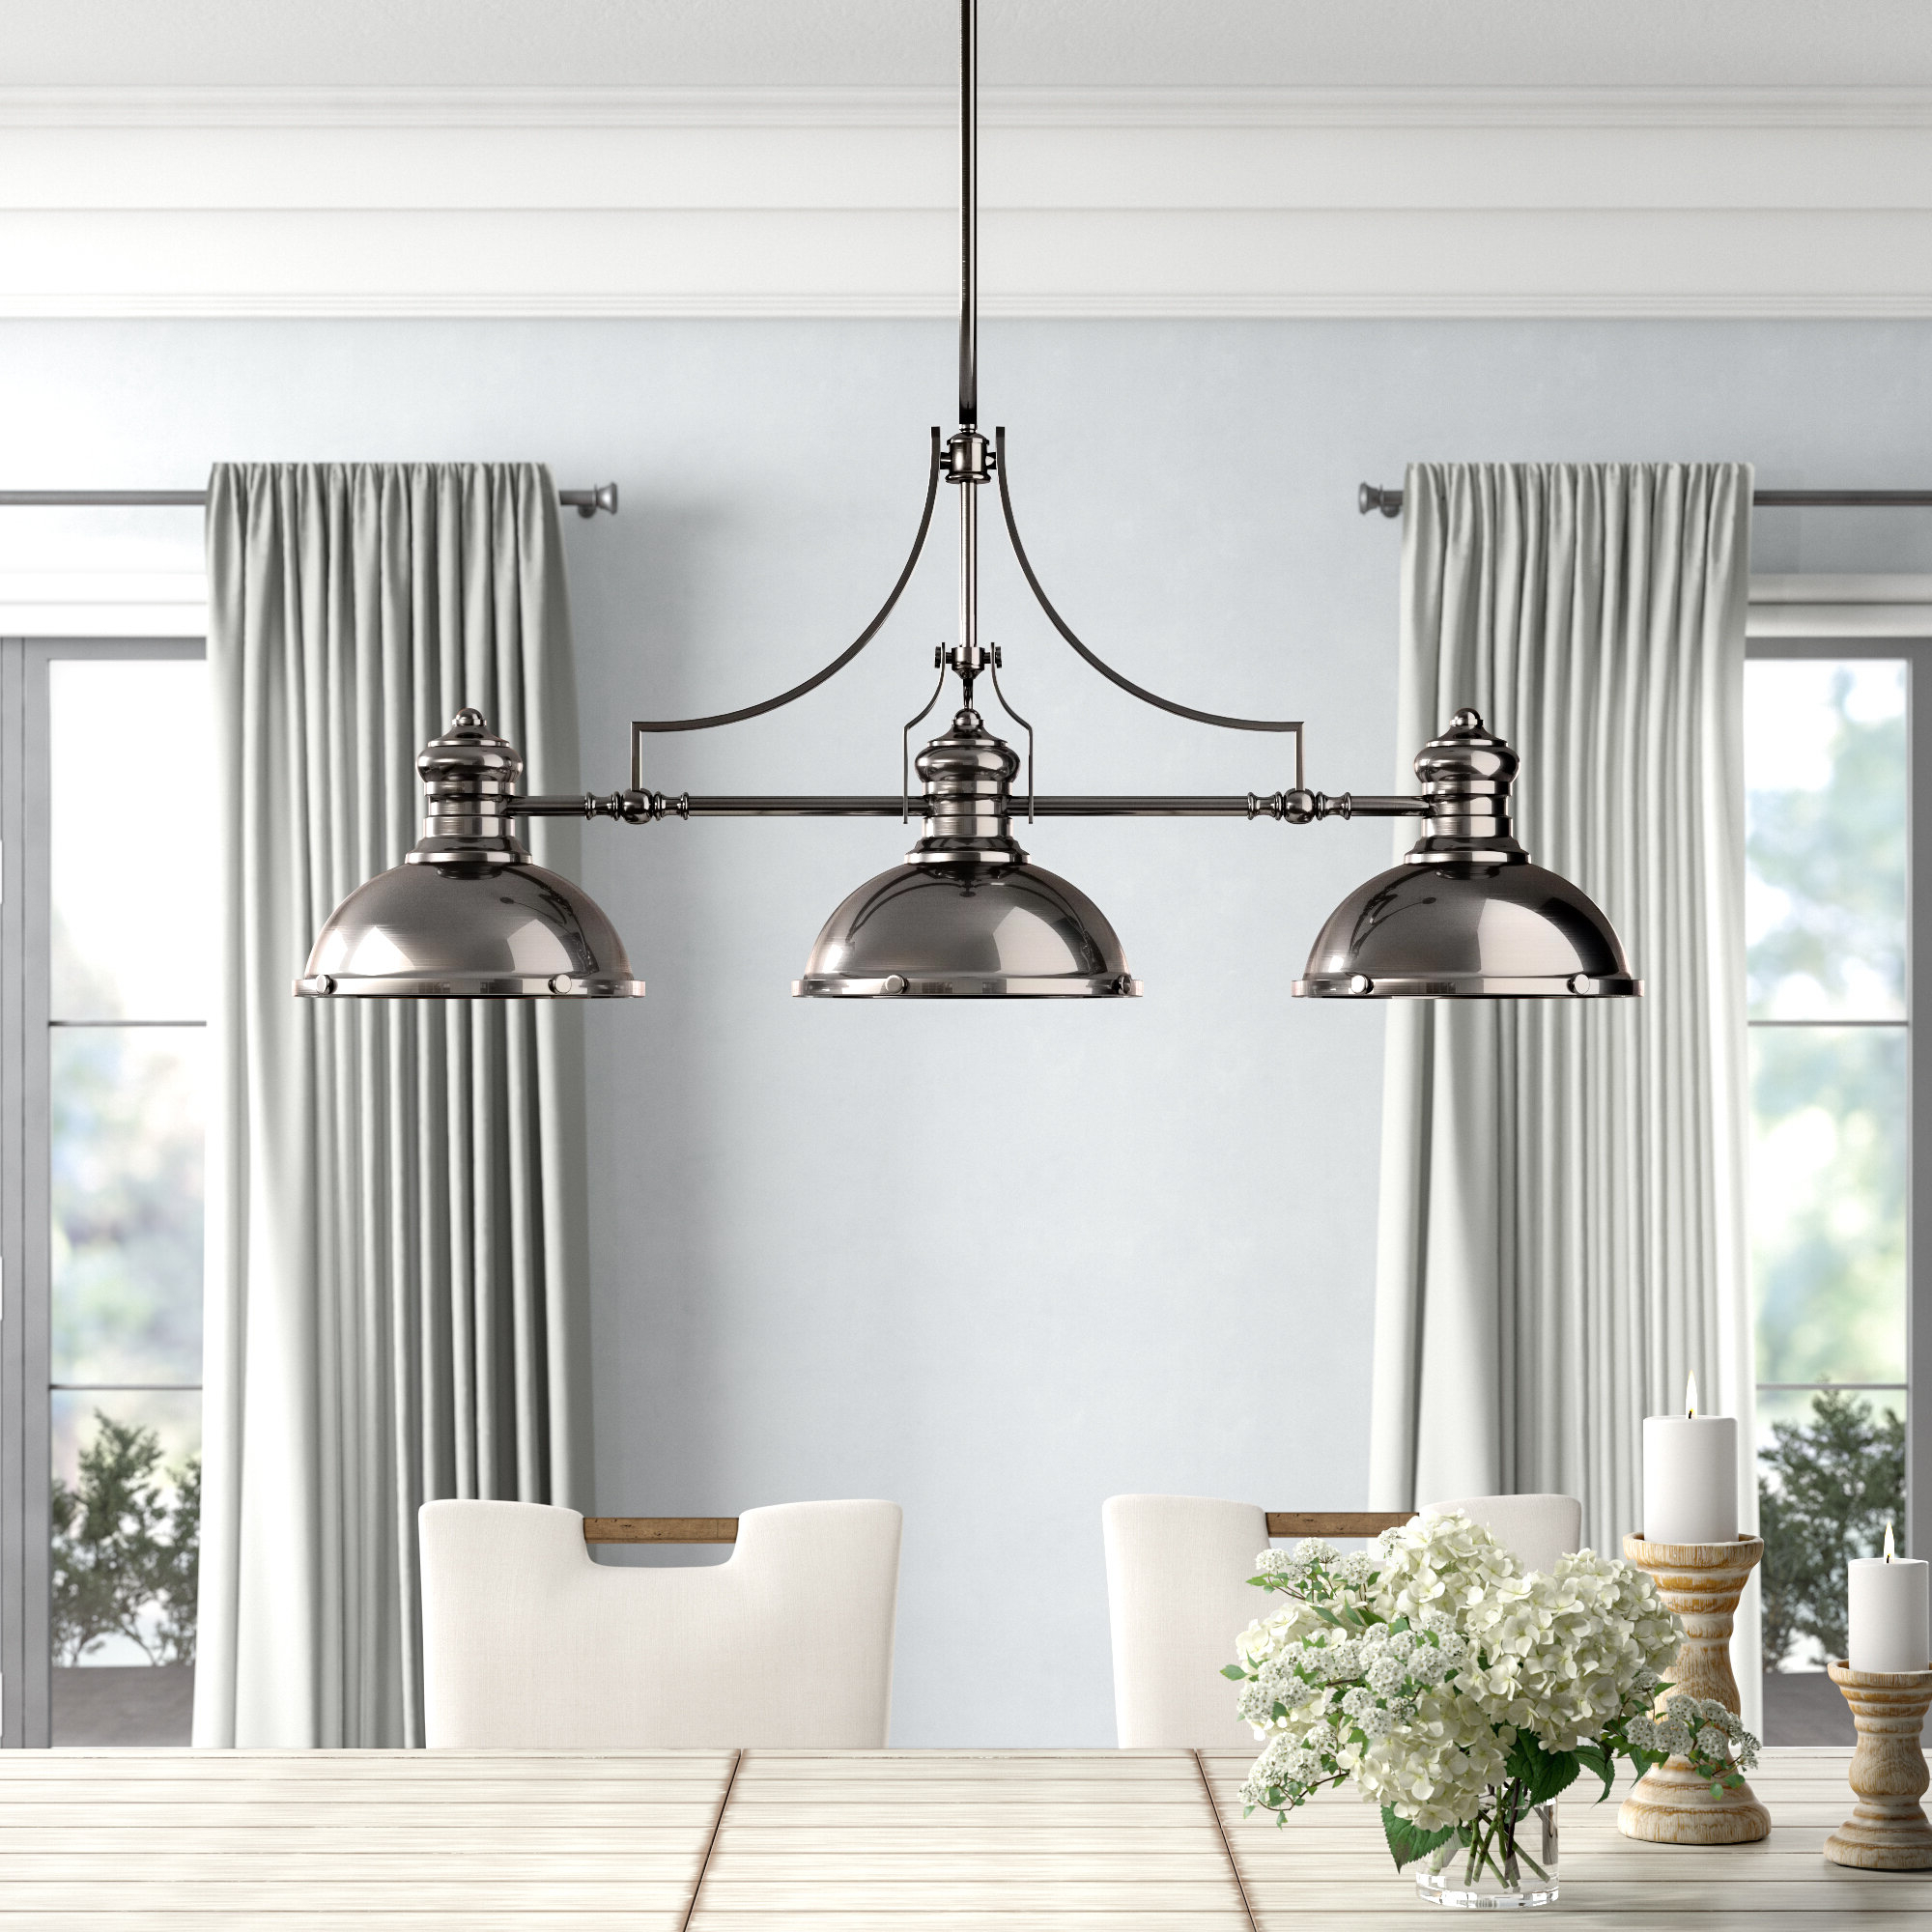 Widely Used Priston 3 Light Kitchen Island Linear Pendant With Regard To Fredela 3 Light Kitchen Island Pendants (View 23 of 25)